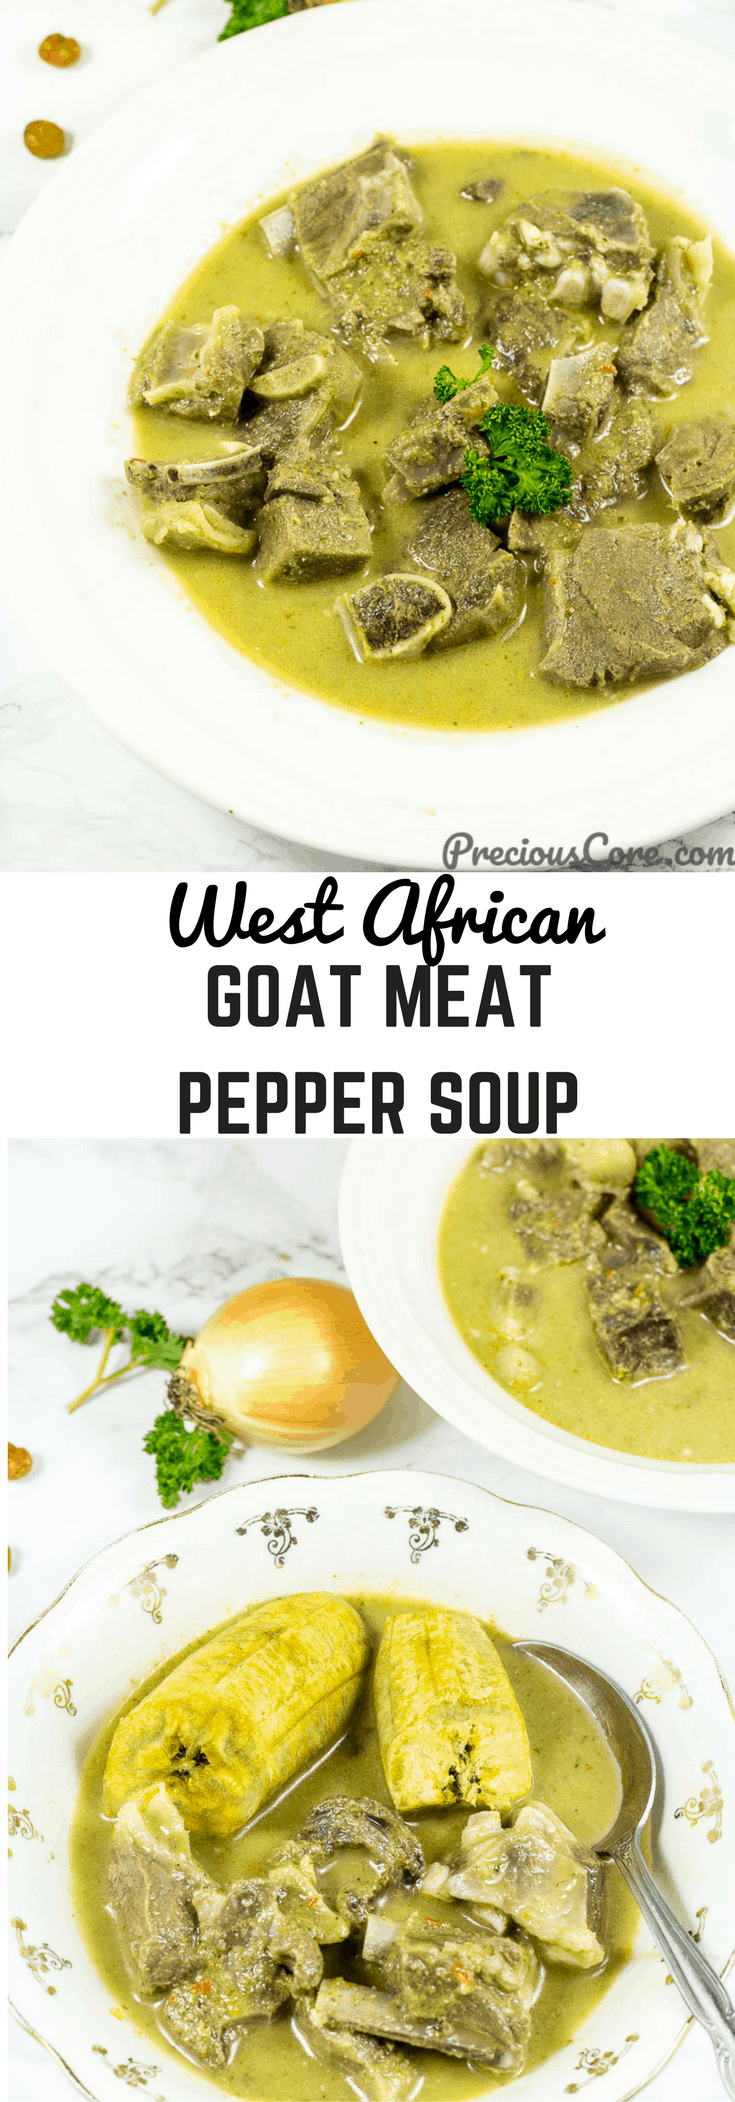 A hearty West African soup cooked with goat meat (leaner and better than beef!), herbs and spices. This Goat Meat Pepper Soup recipe is so comforting, easy to make and perfect for cold days. Get the recipe on PreciousCore.com. #Soups #Appetizer #African